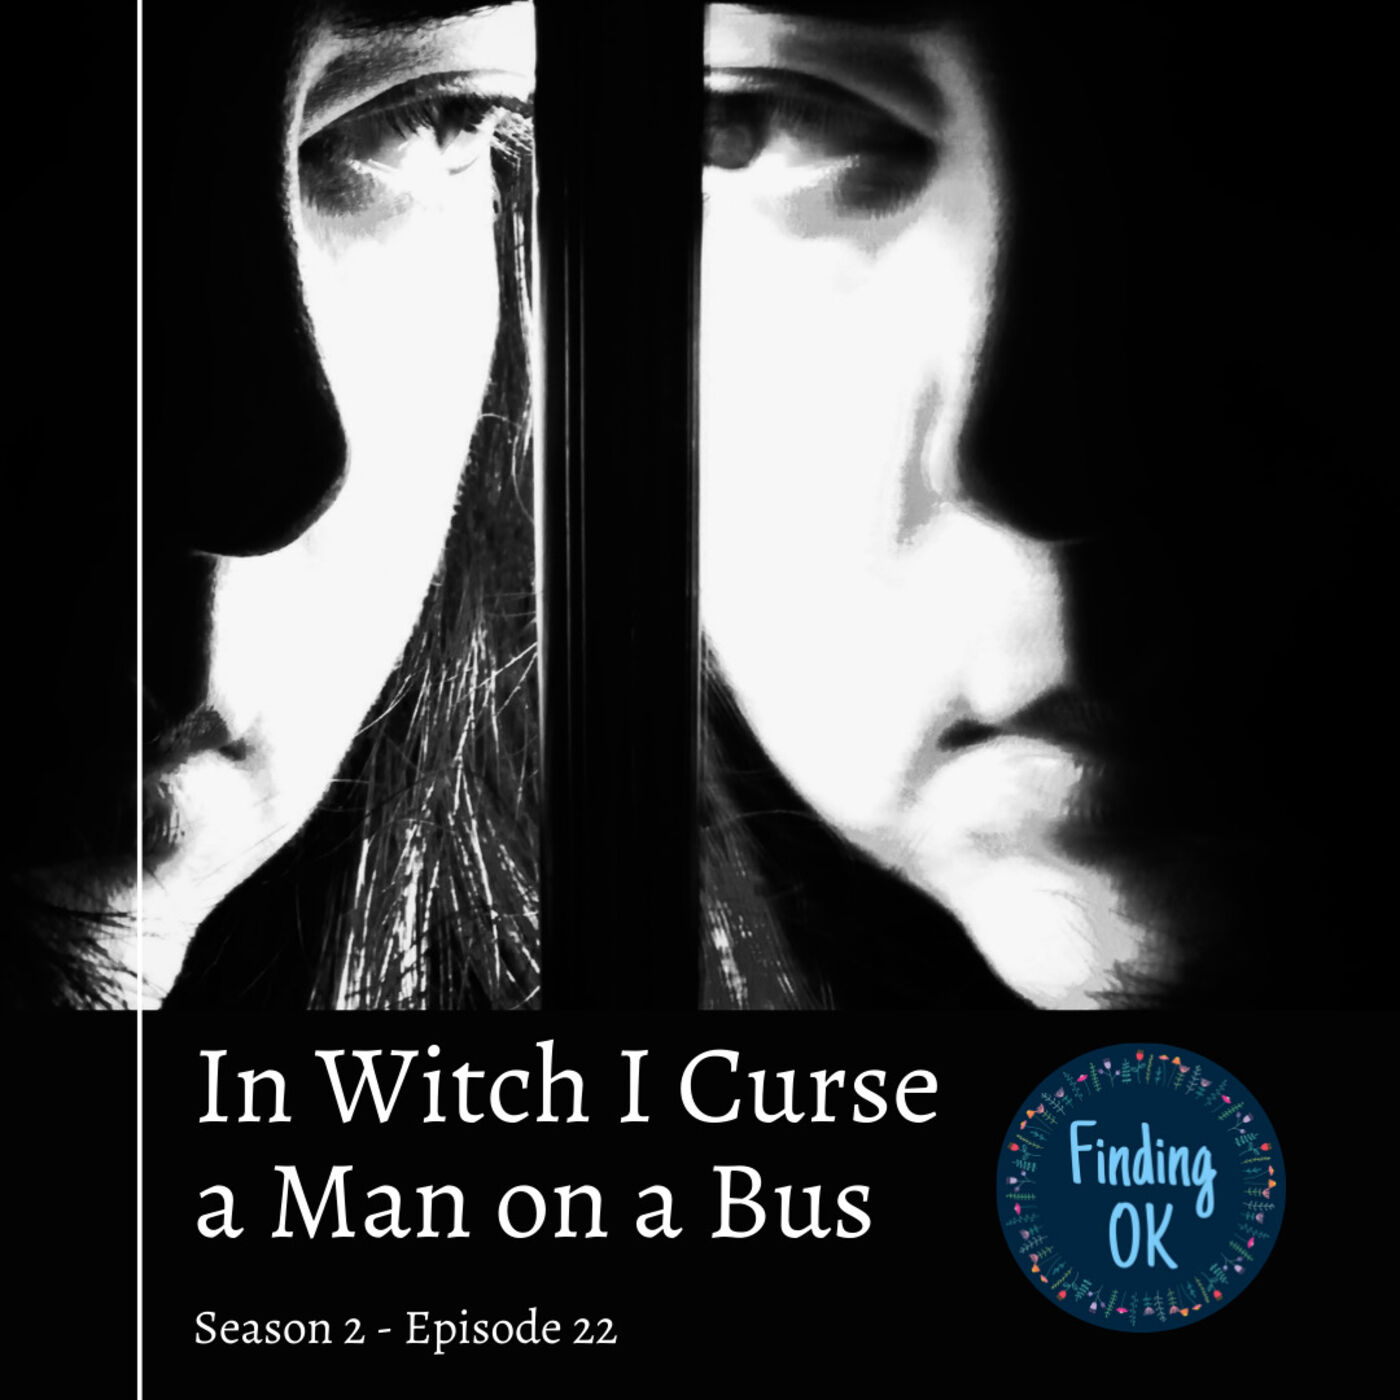 In Witch I Curse a Man on a Bus